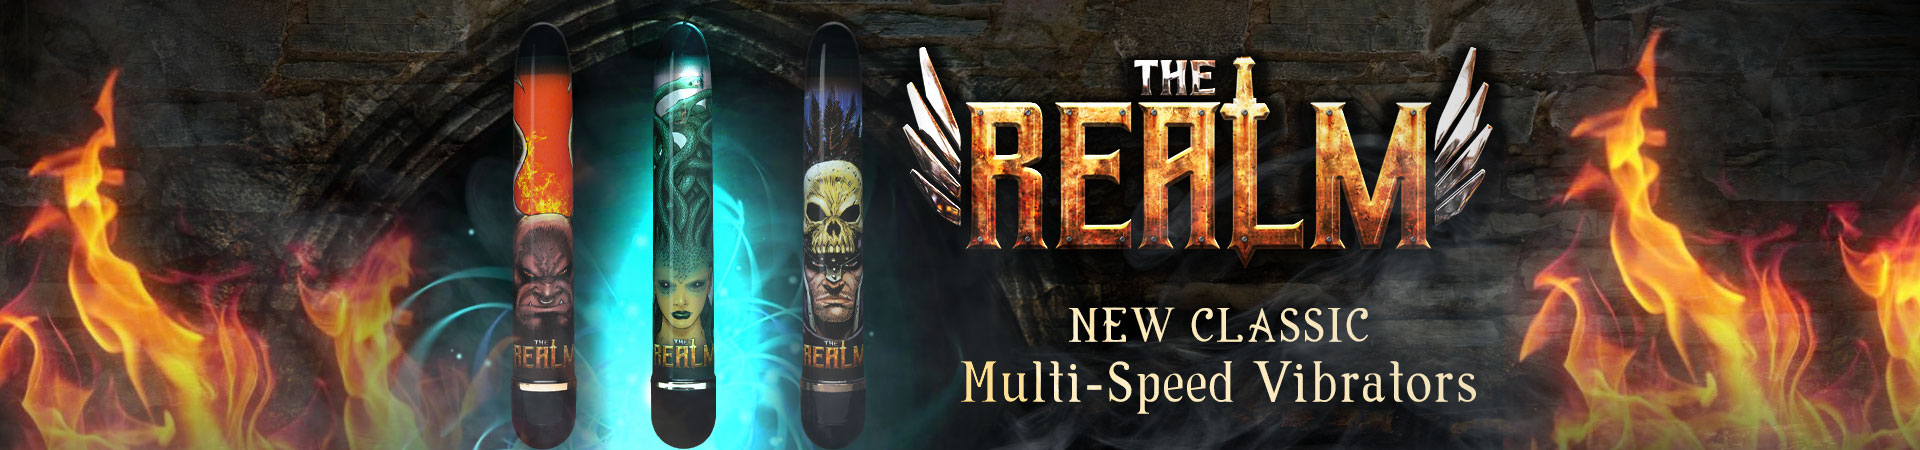 New! The Realm Classic Multi-Speed Vibrators